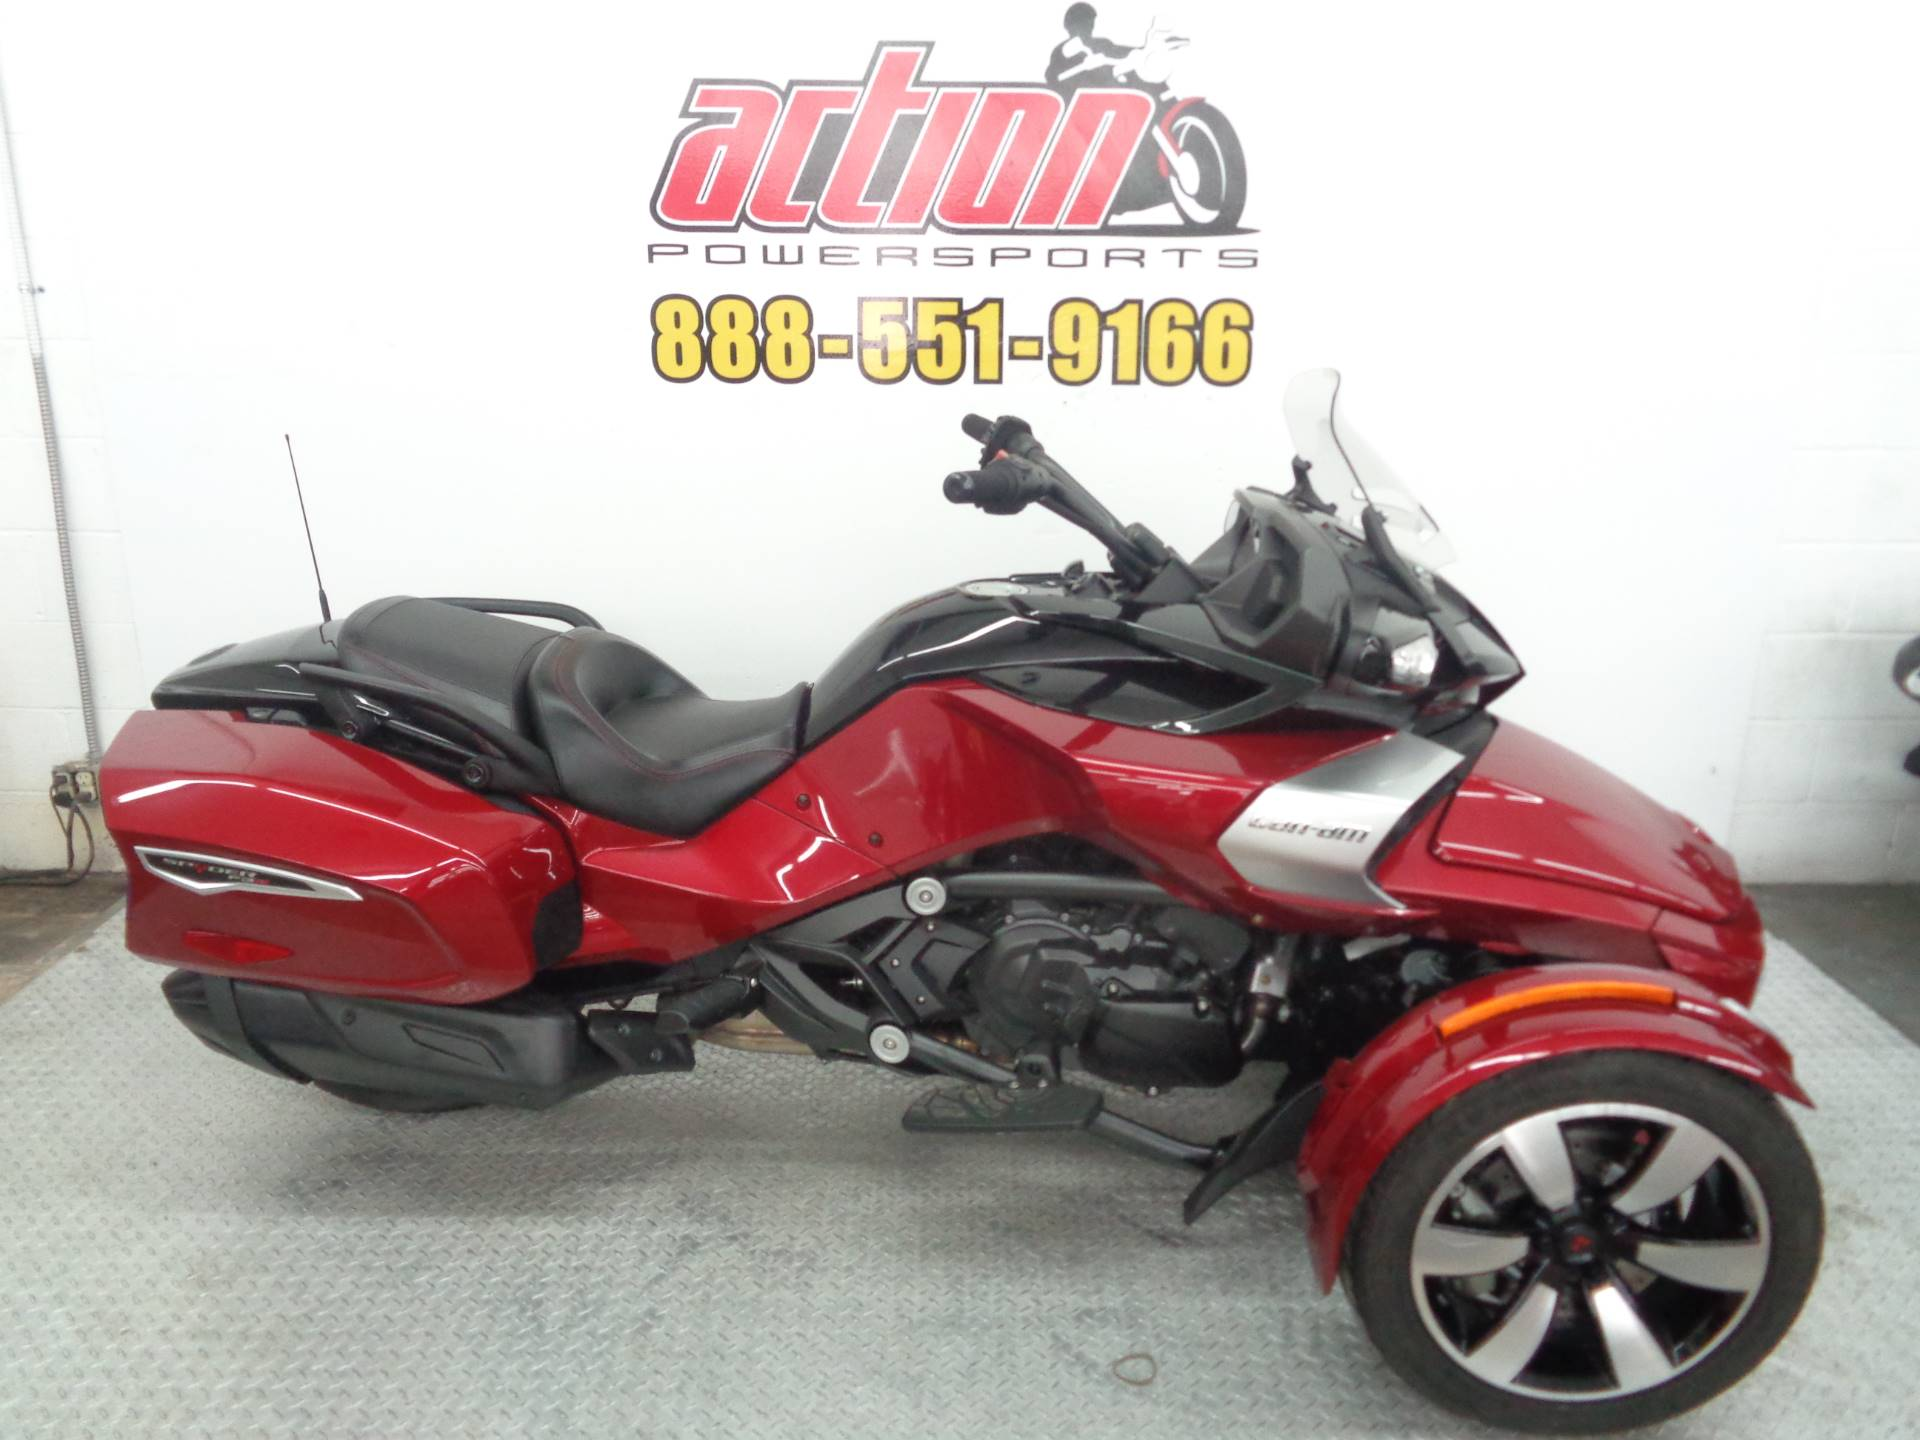 2016 Can-Am Spyder F-3T in Tulsa, Oklahoma - Photo 1